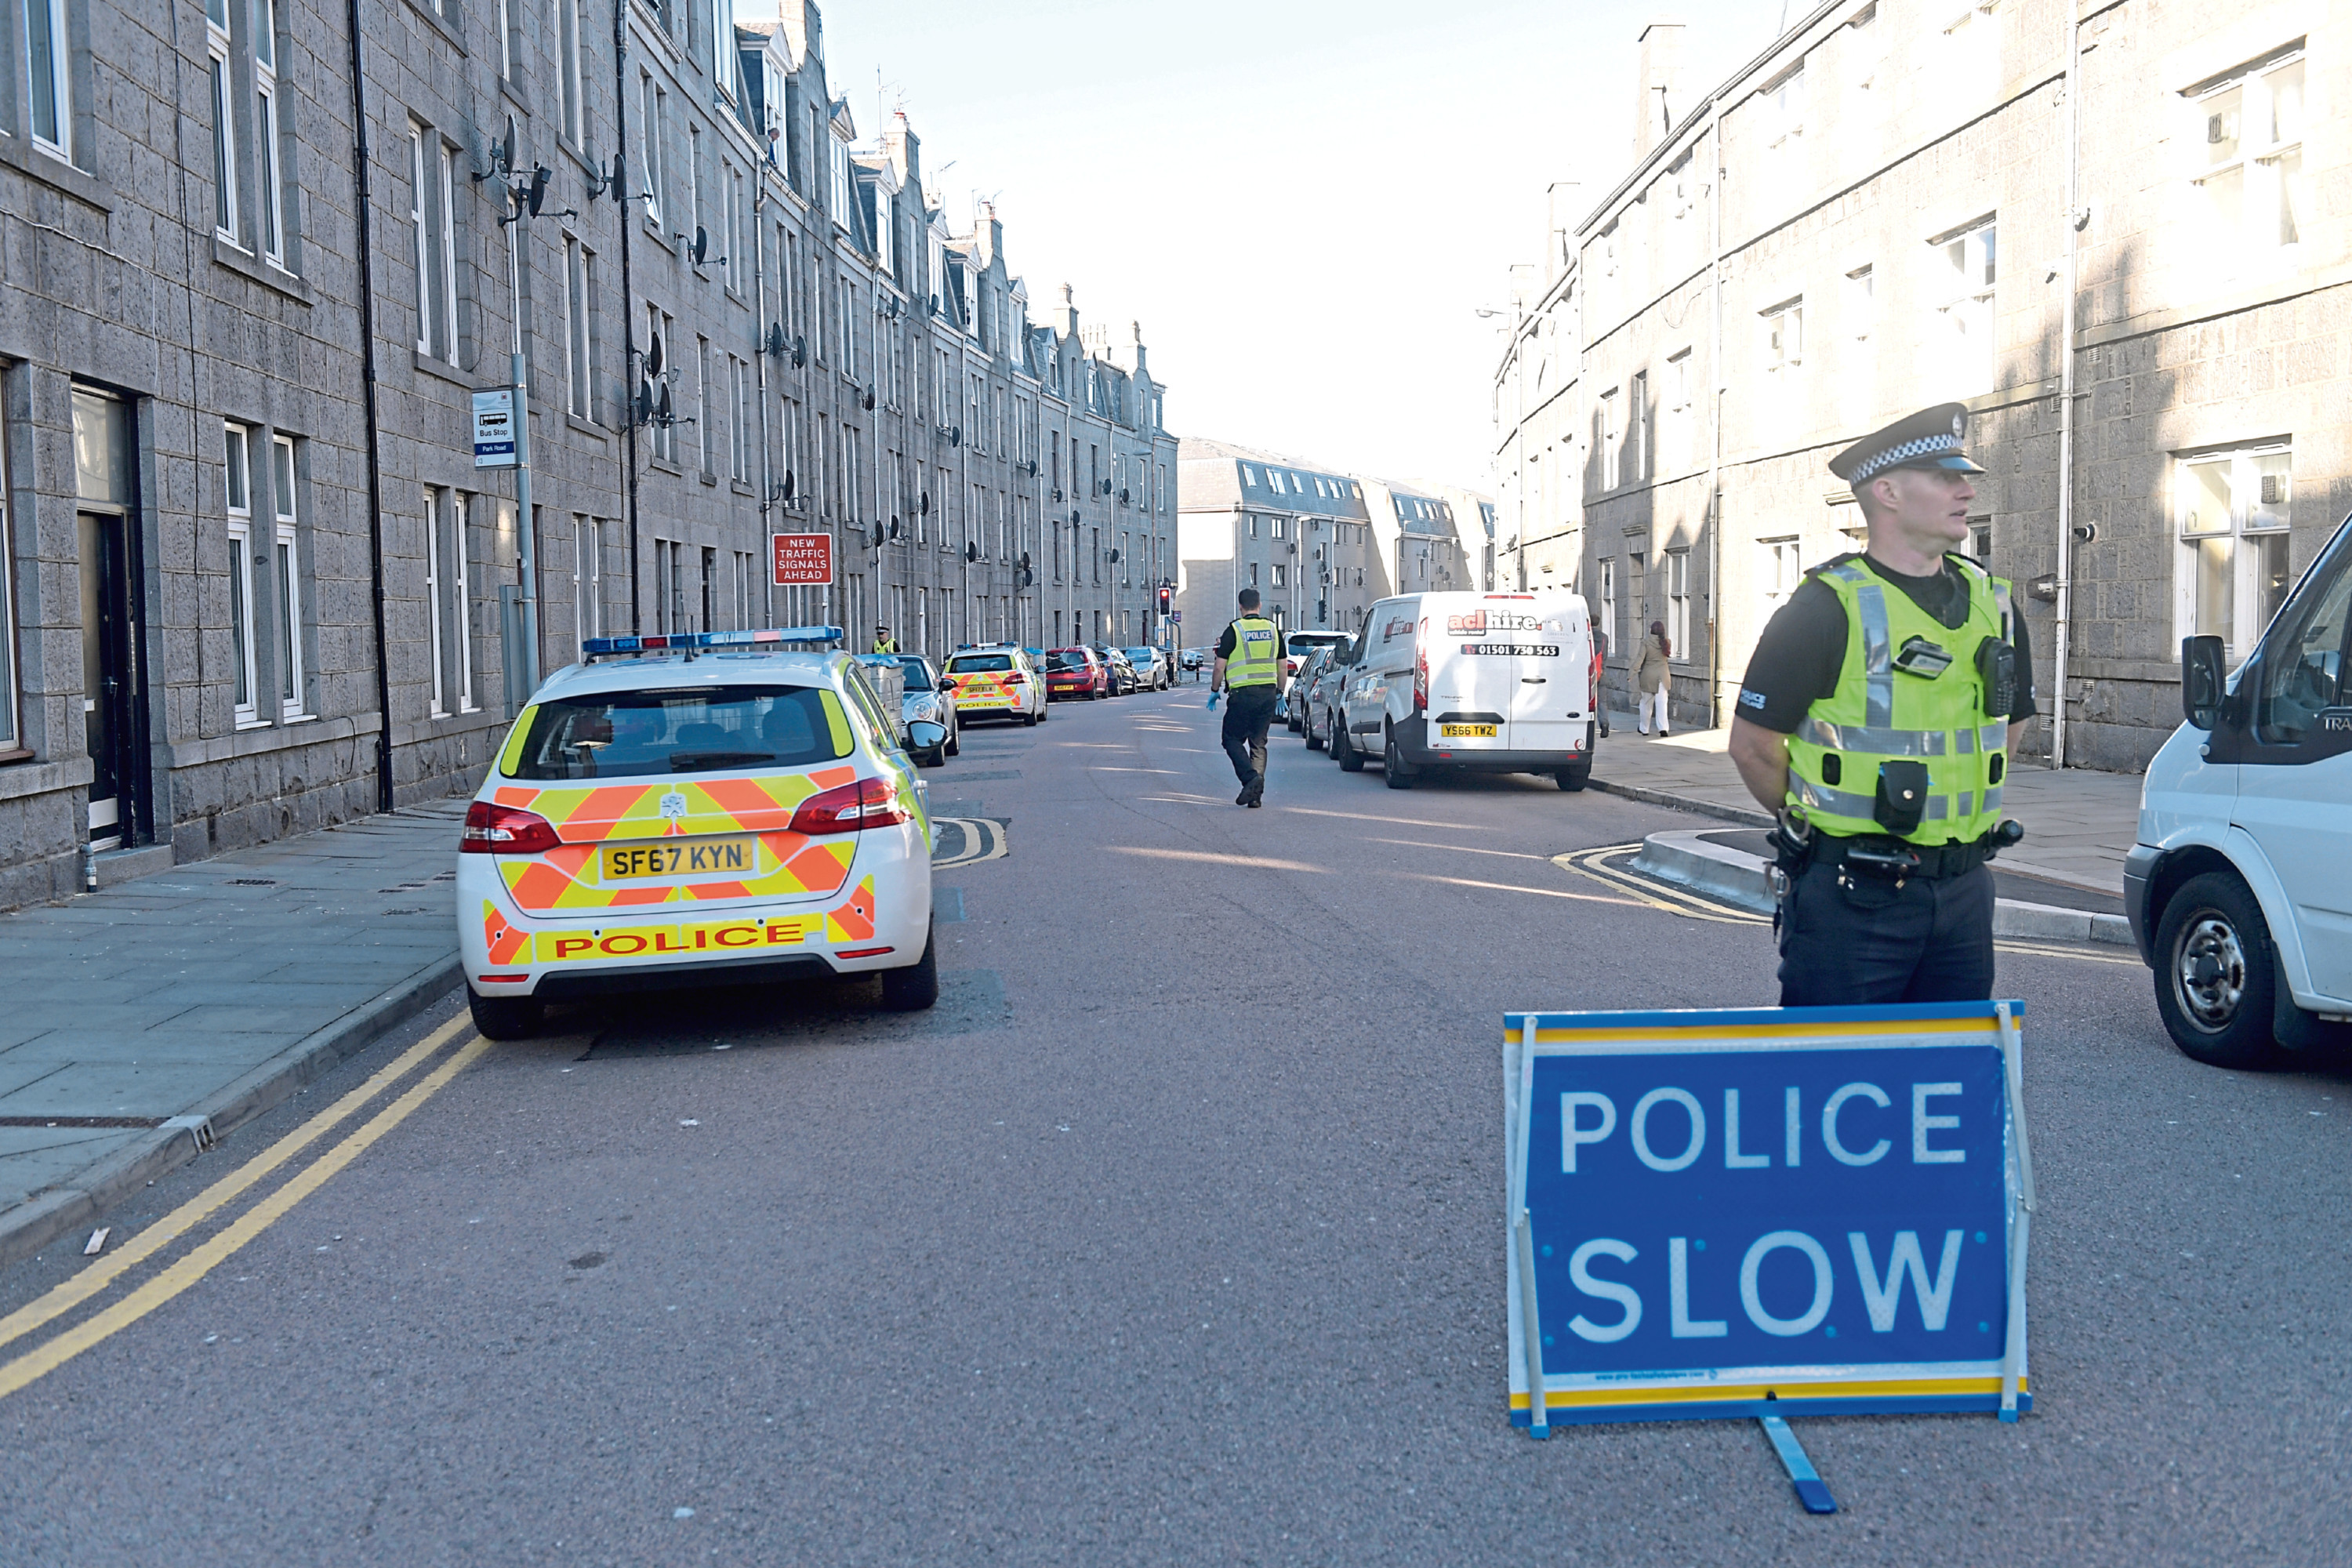 Police are appealing for witnesses after the incident on Urquhart Road.